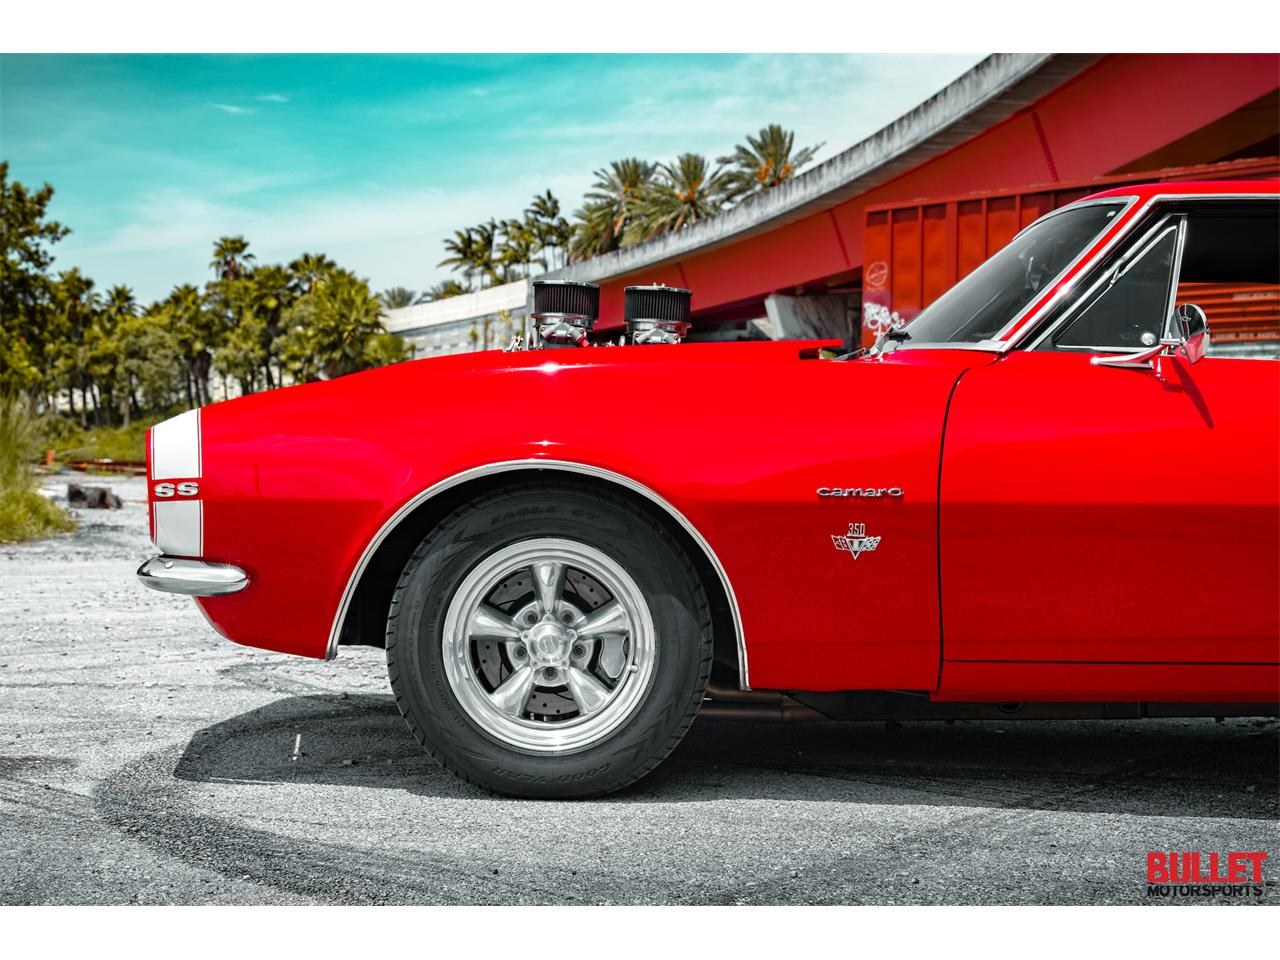 Large Picture of '67 Chevrolet Camaro located in Fort Lauderdale Florida - $49,950.00 Offered by Bullet Motorsports Inc - QIJZ